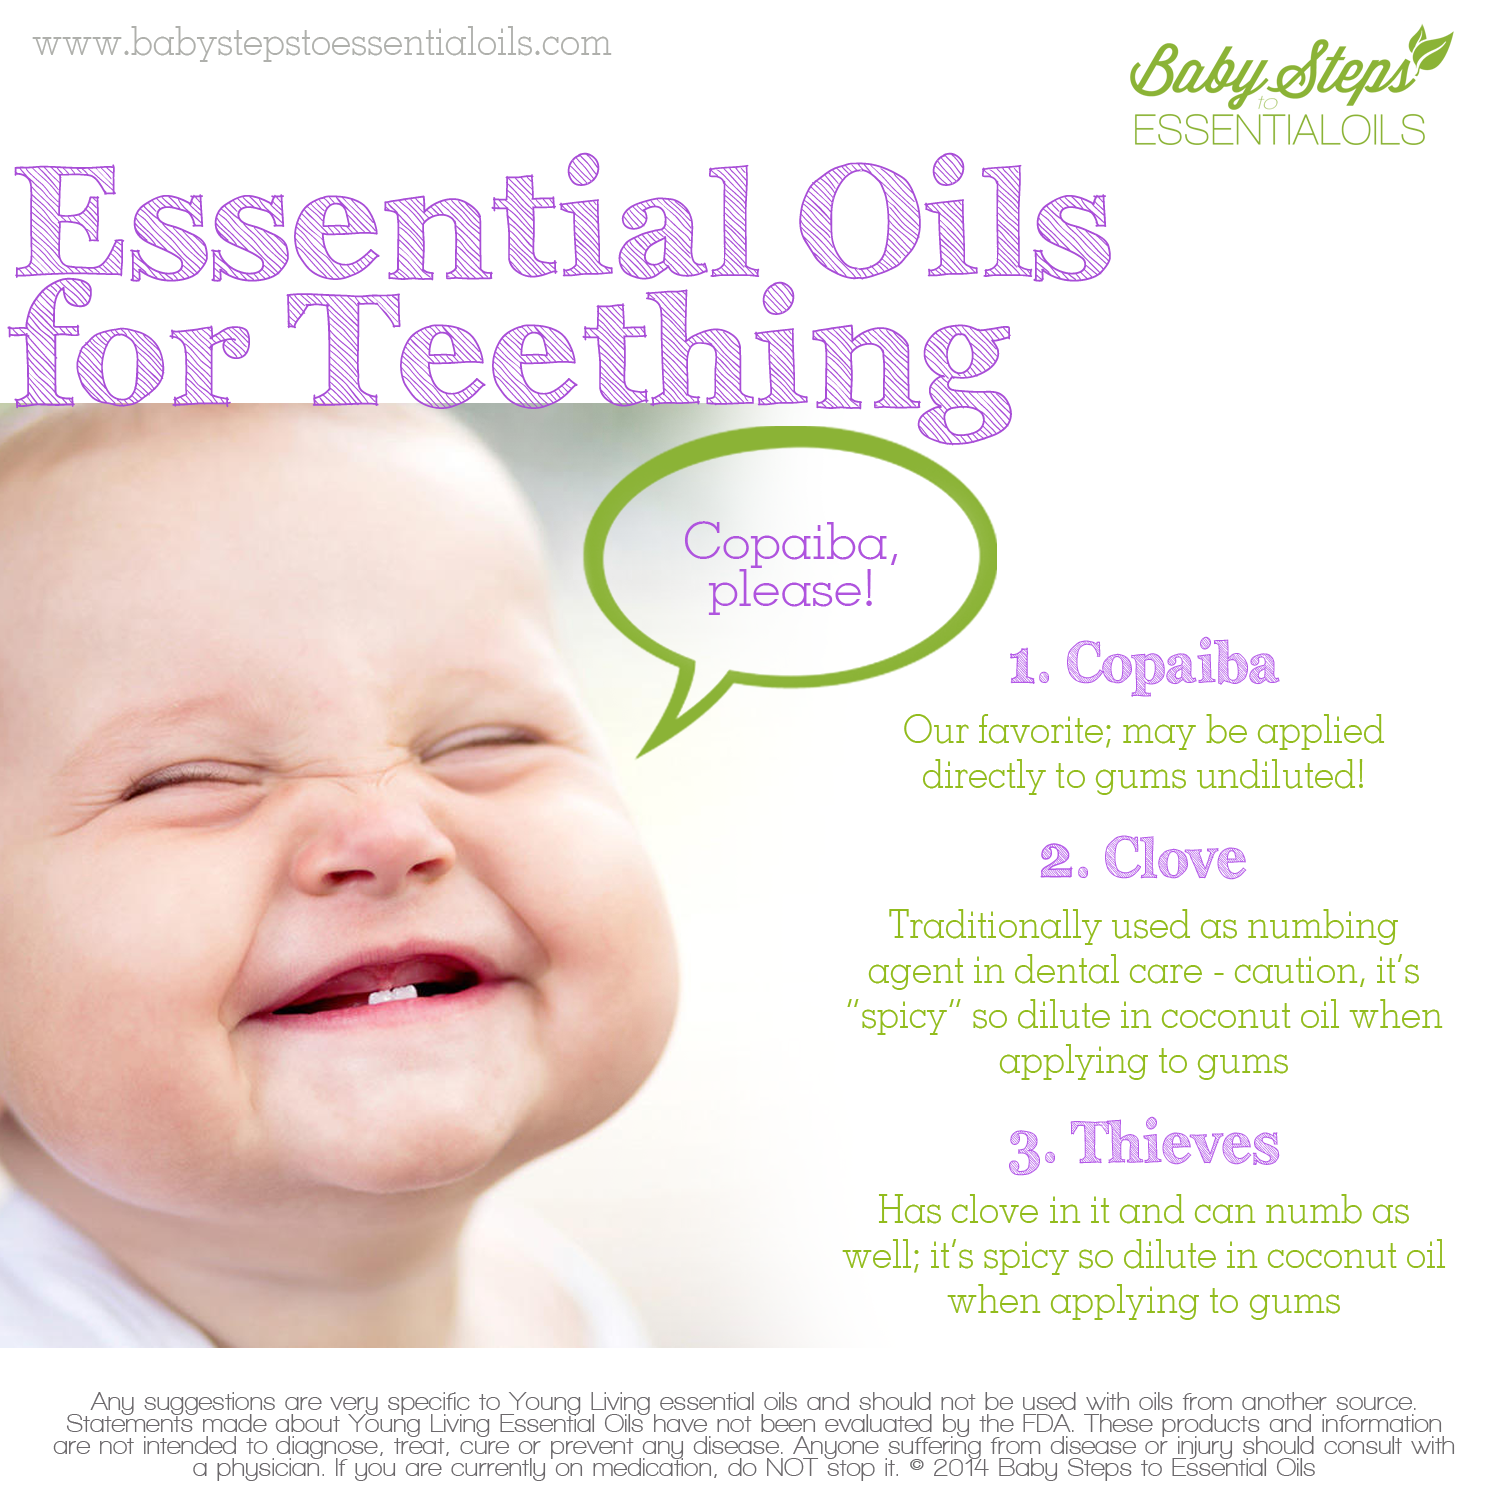 Copaiba Is Great For Teething The Kids Will Ask For It